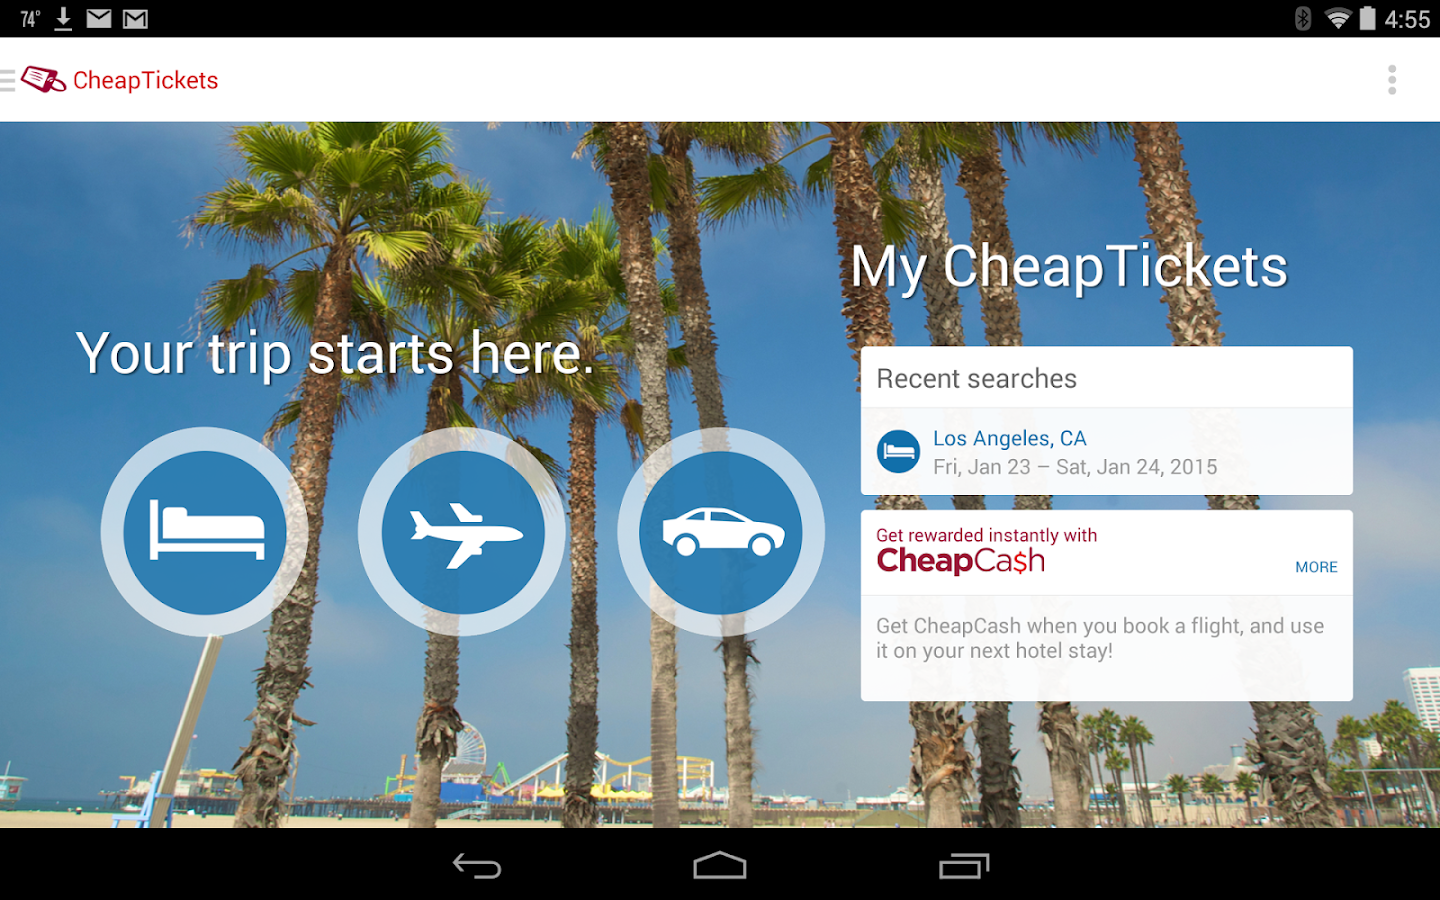 CheapTickets - Cheap is good. - Android Apps on Google Play